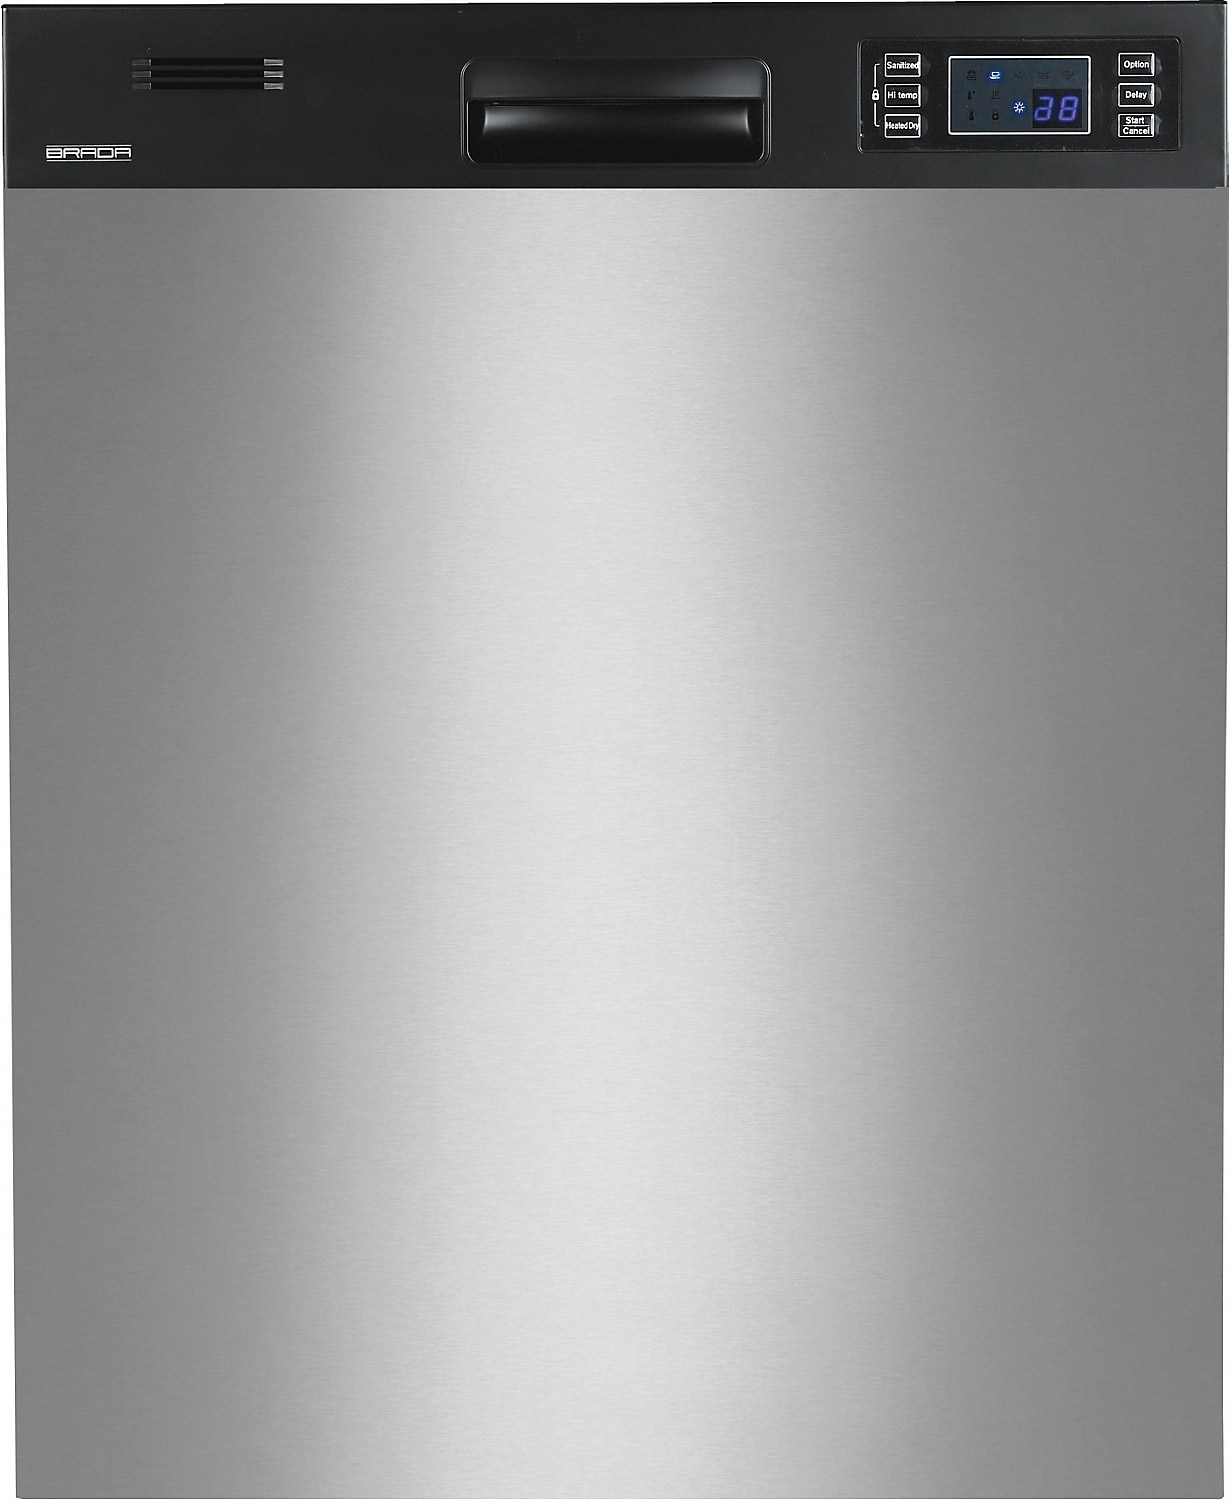 Clean-Up - Brada Under-Counter Dishwasher with Stainless Interior - Stainless Steel